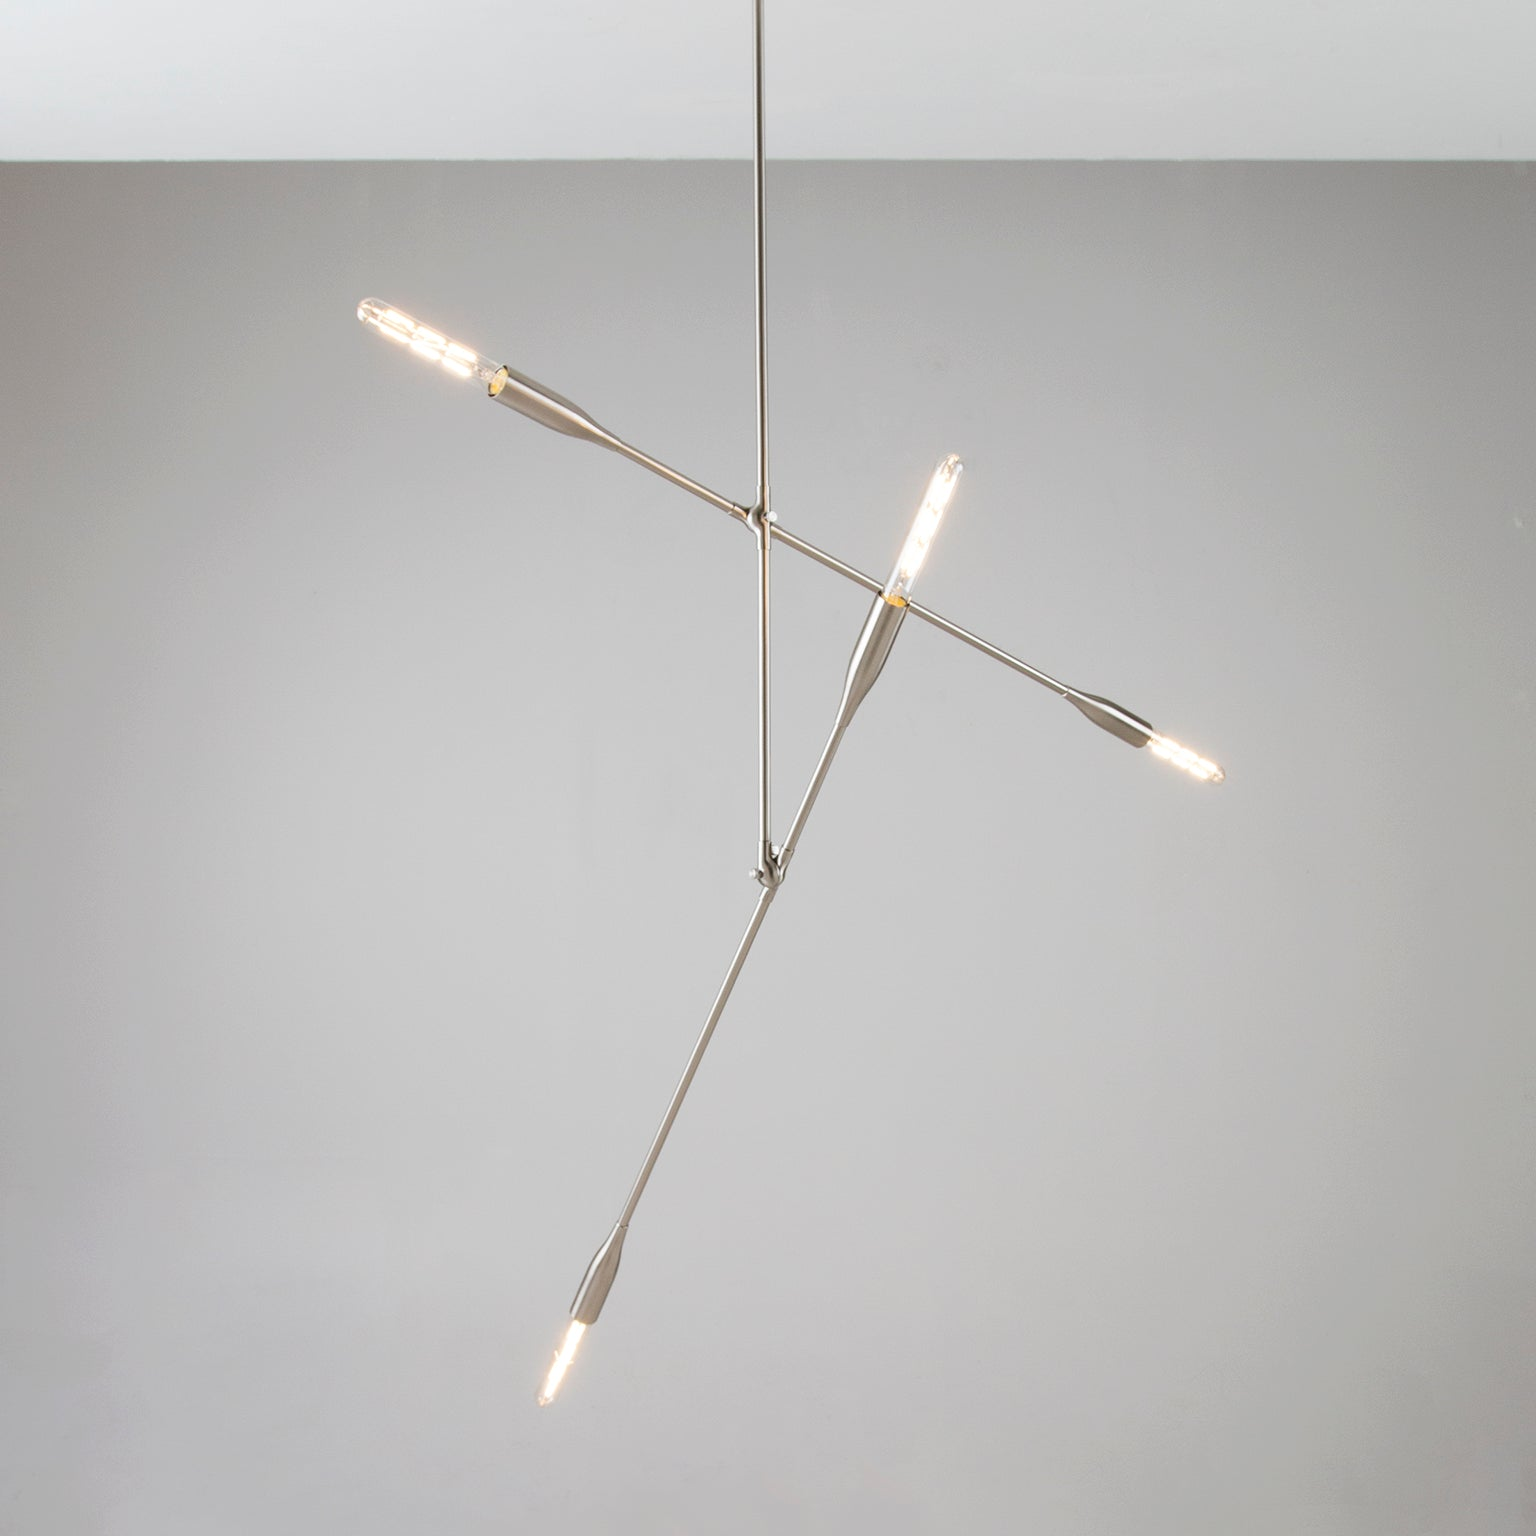 Sorenthia 2-Arm linear light fixture in Brushed Nickel by Studio DUNN